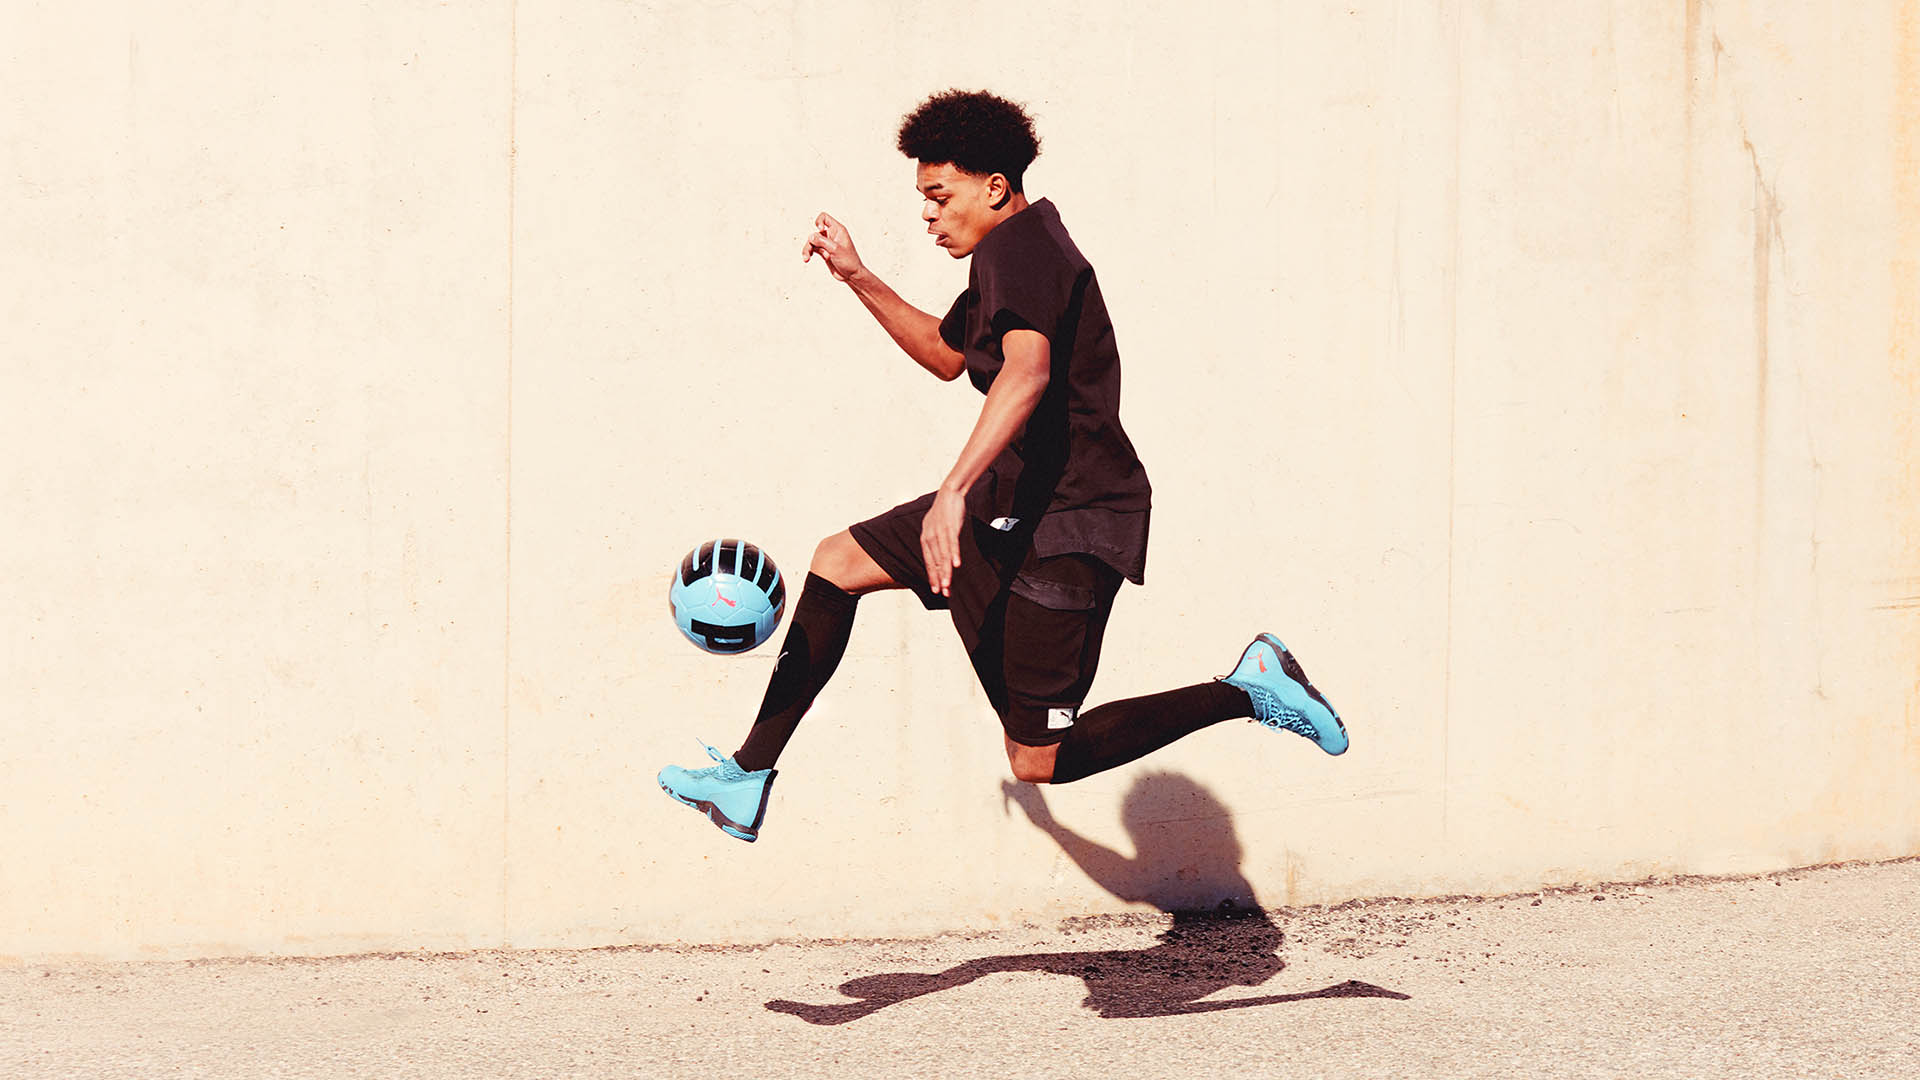 Puma Athlete kicking a football